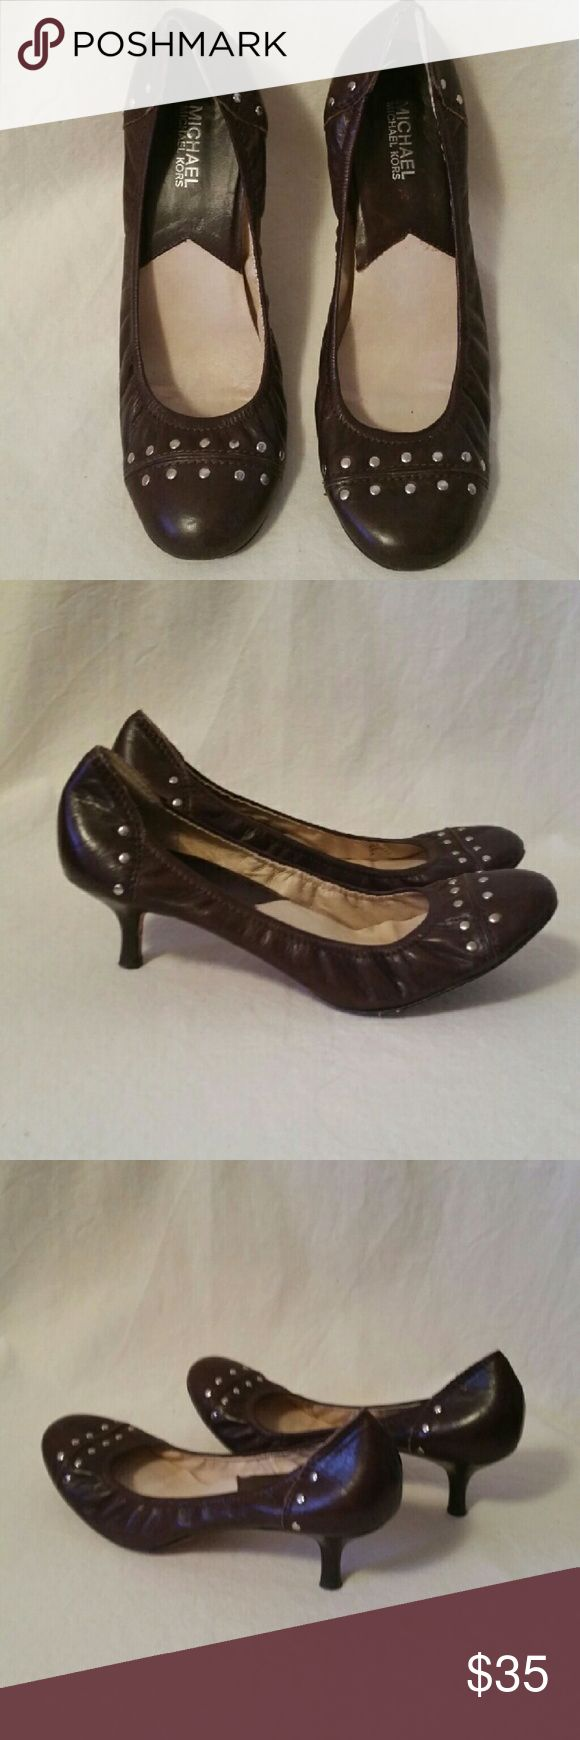 Michael Kors Ballet Heels size 10 This is a pair of super cute brown leather Michael Kors Ballet heels in a size 10. The heel is small about 2 inches and the ballet fit makes them incredibly comfortable. These are in great shape. Michael Kors Shoes Heels